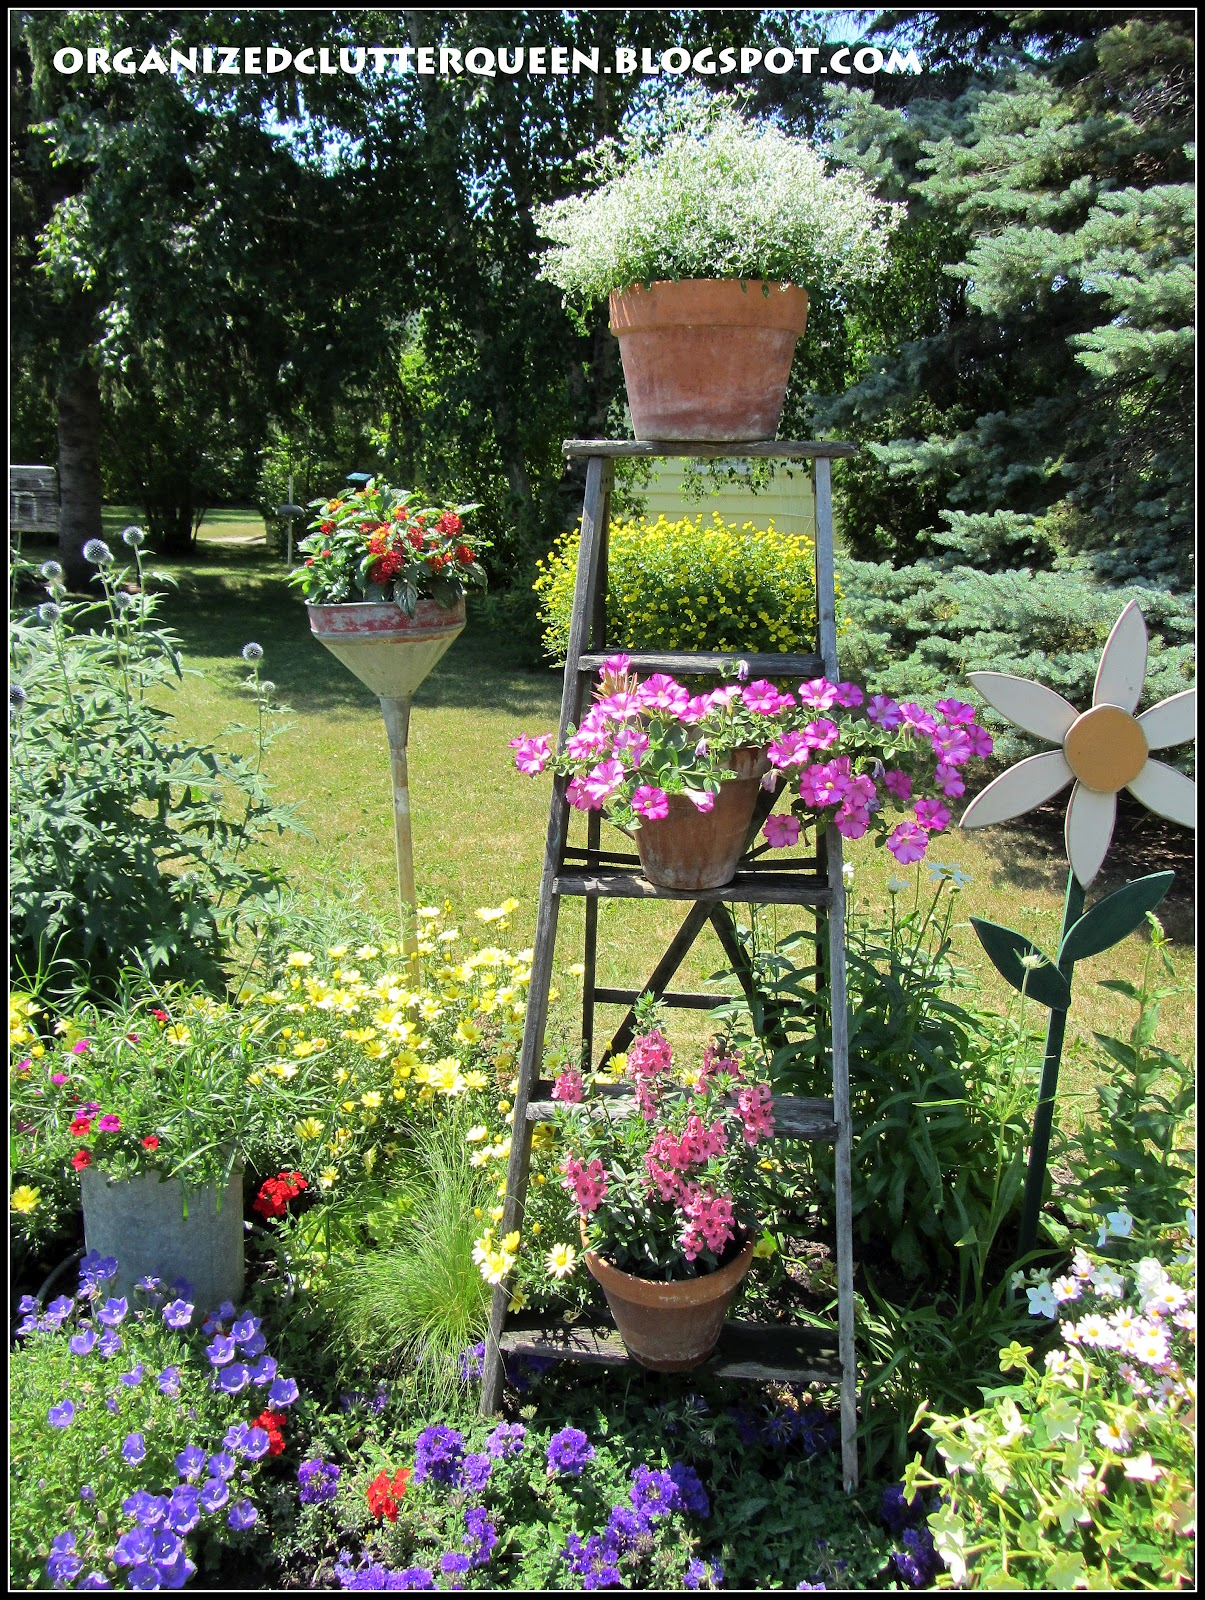 The front yard flower border organized clutter - Flowers for the front yard ...